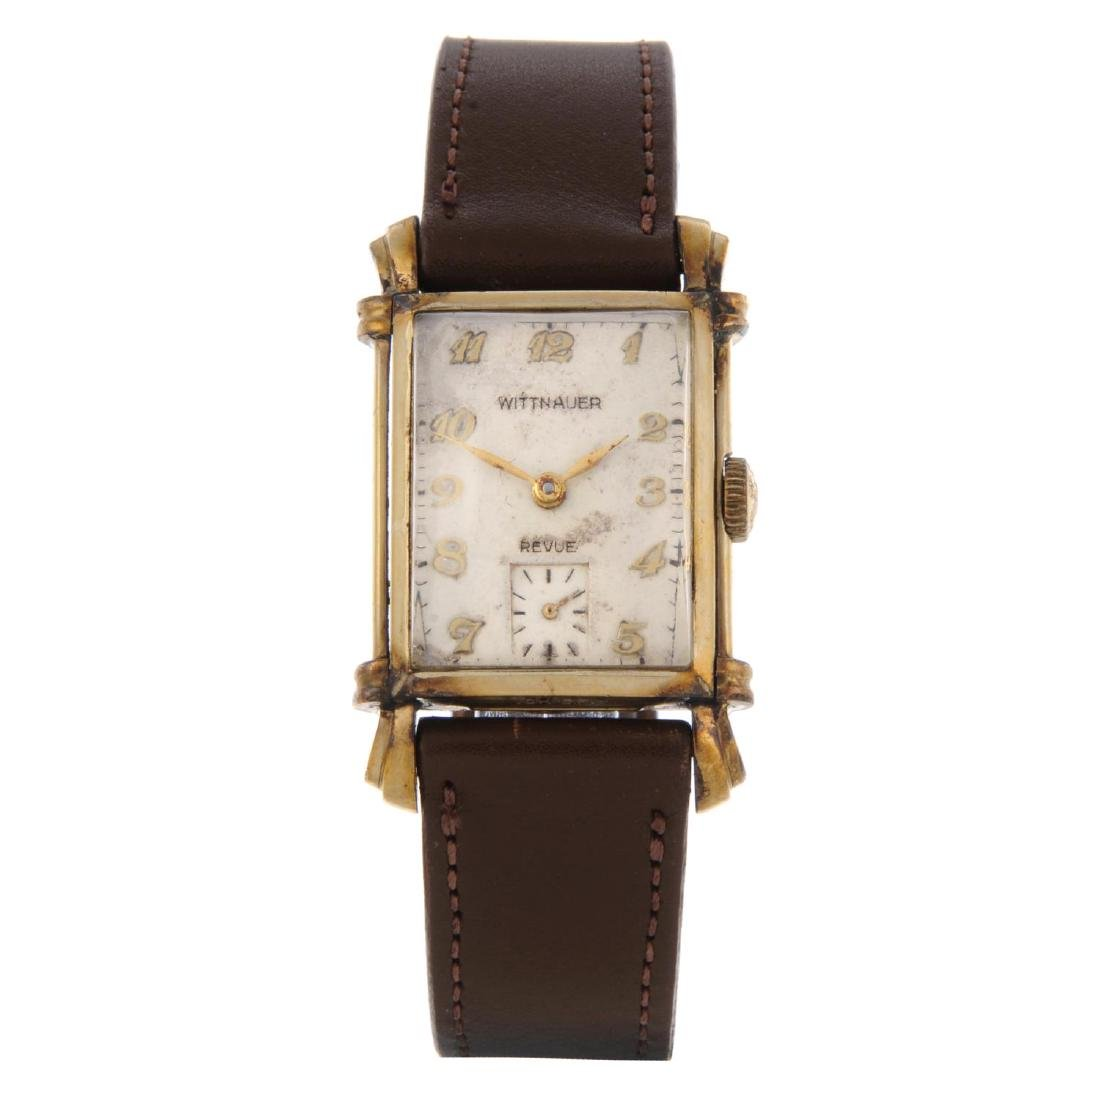 WITTNAUER - a wrist watch. Gold filled case with